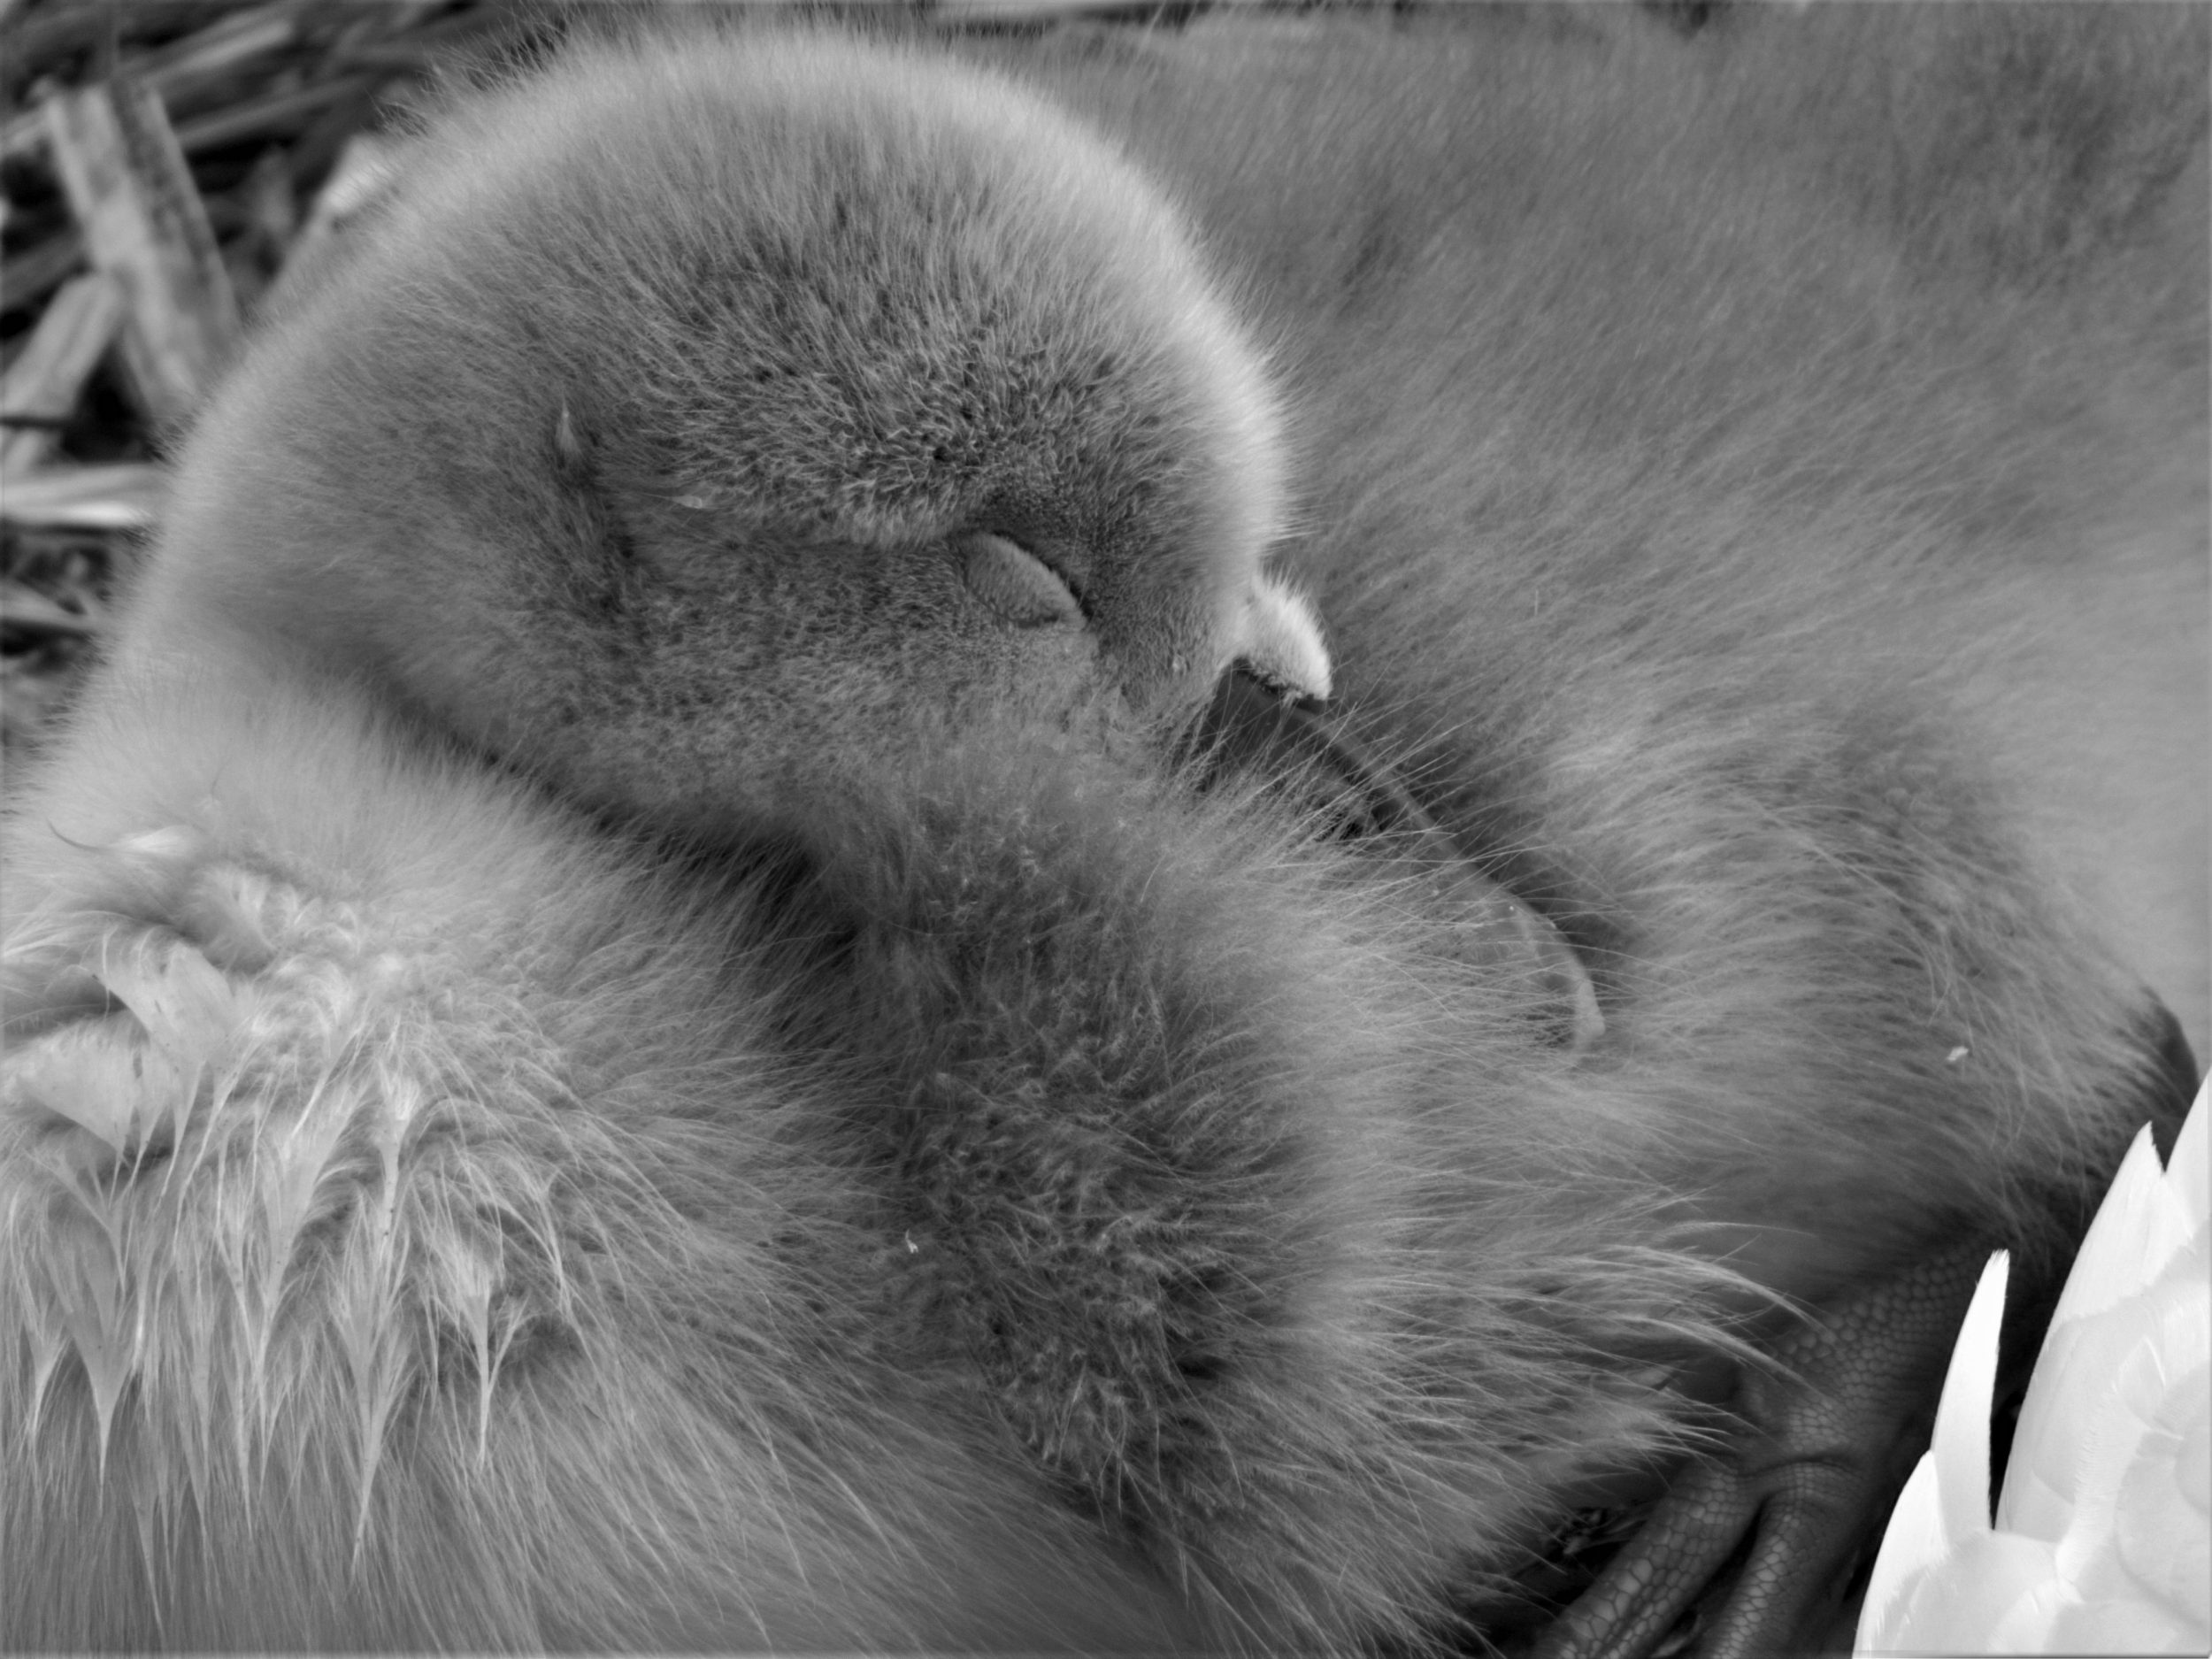 cygnet at the lido